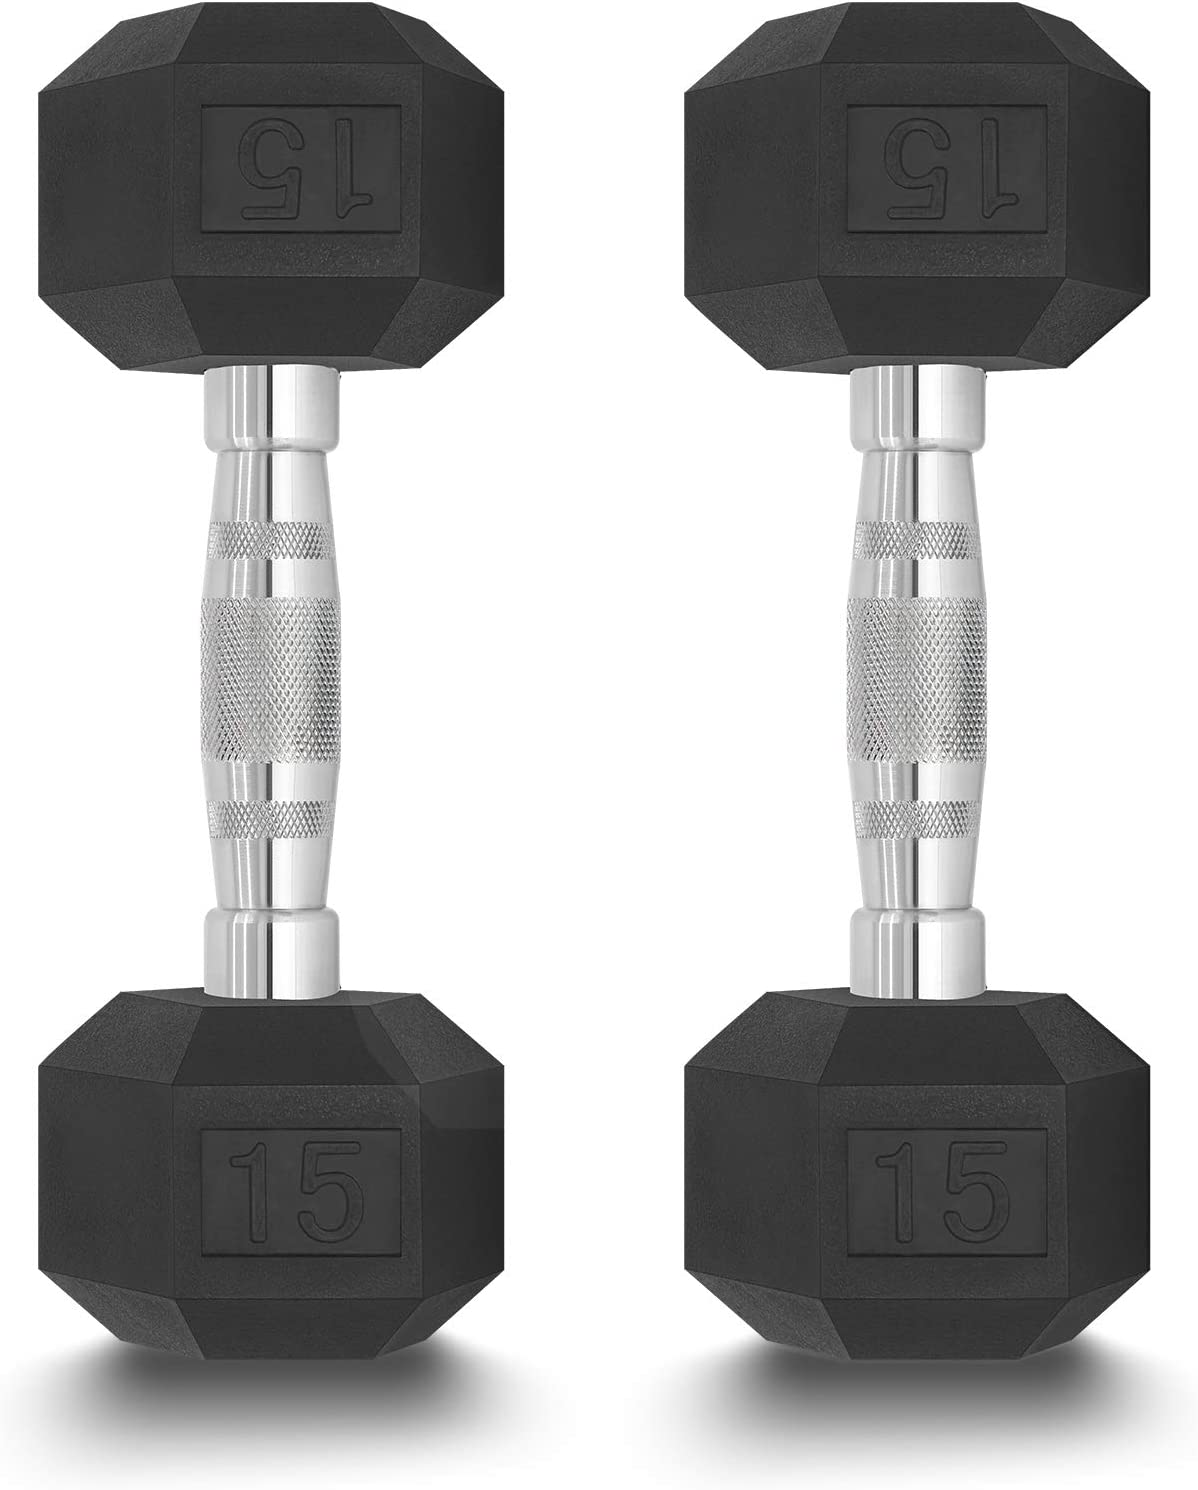 GEAR+ High quality 25% OFF 15lb Dumbbells Set of 2 15 Hex Weighs Dumbbell Rubber